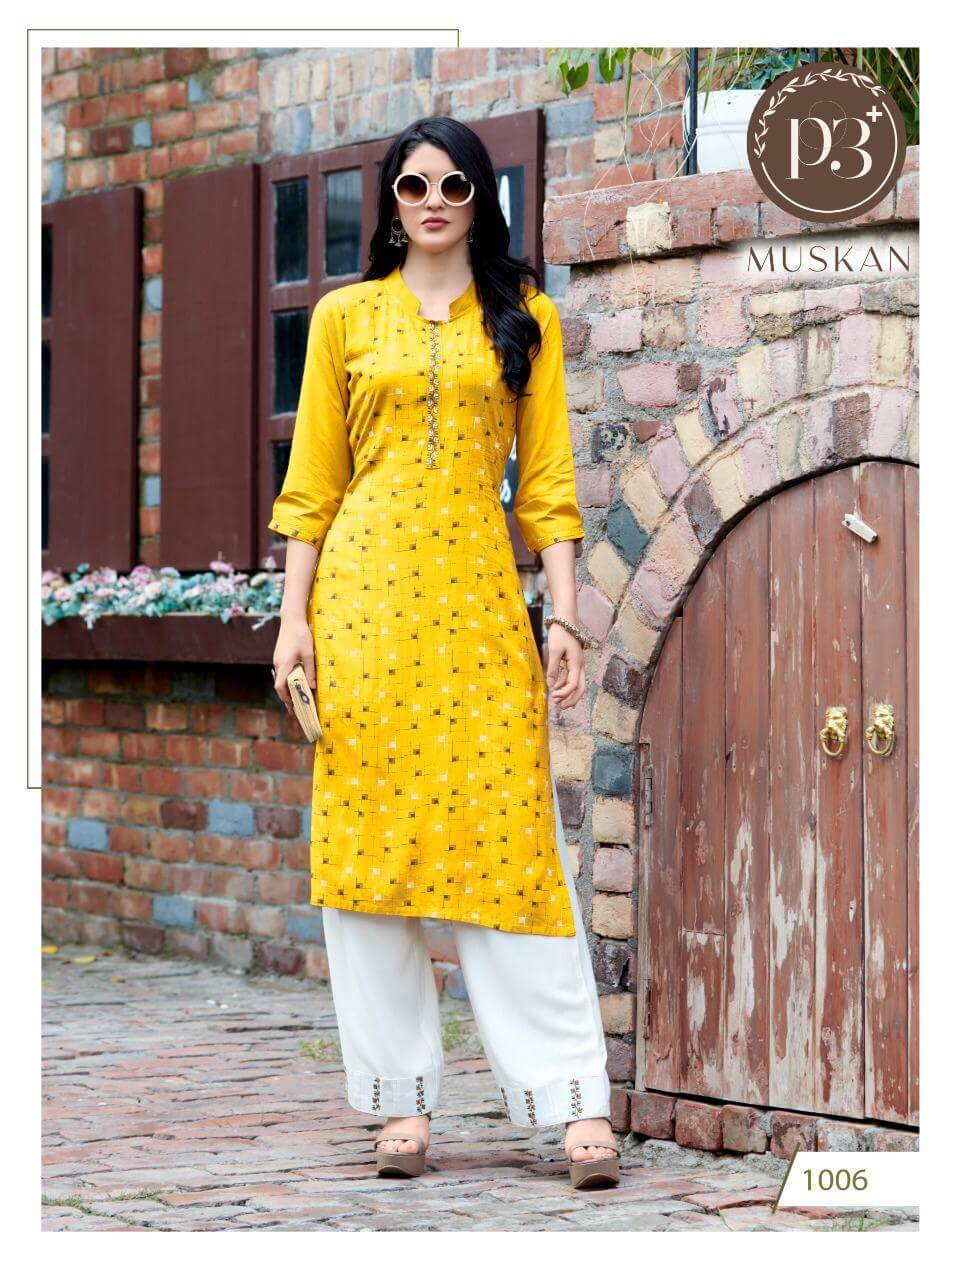 P3 Muskan collection 10